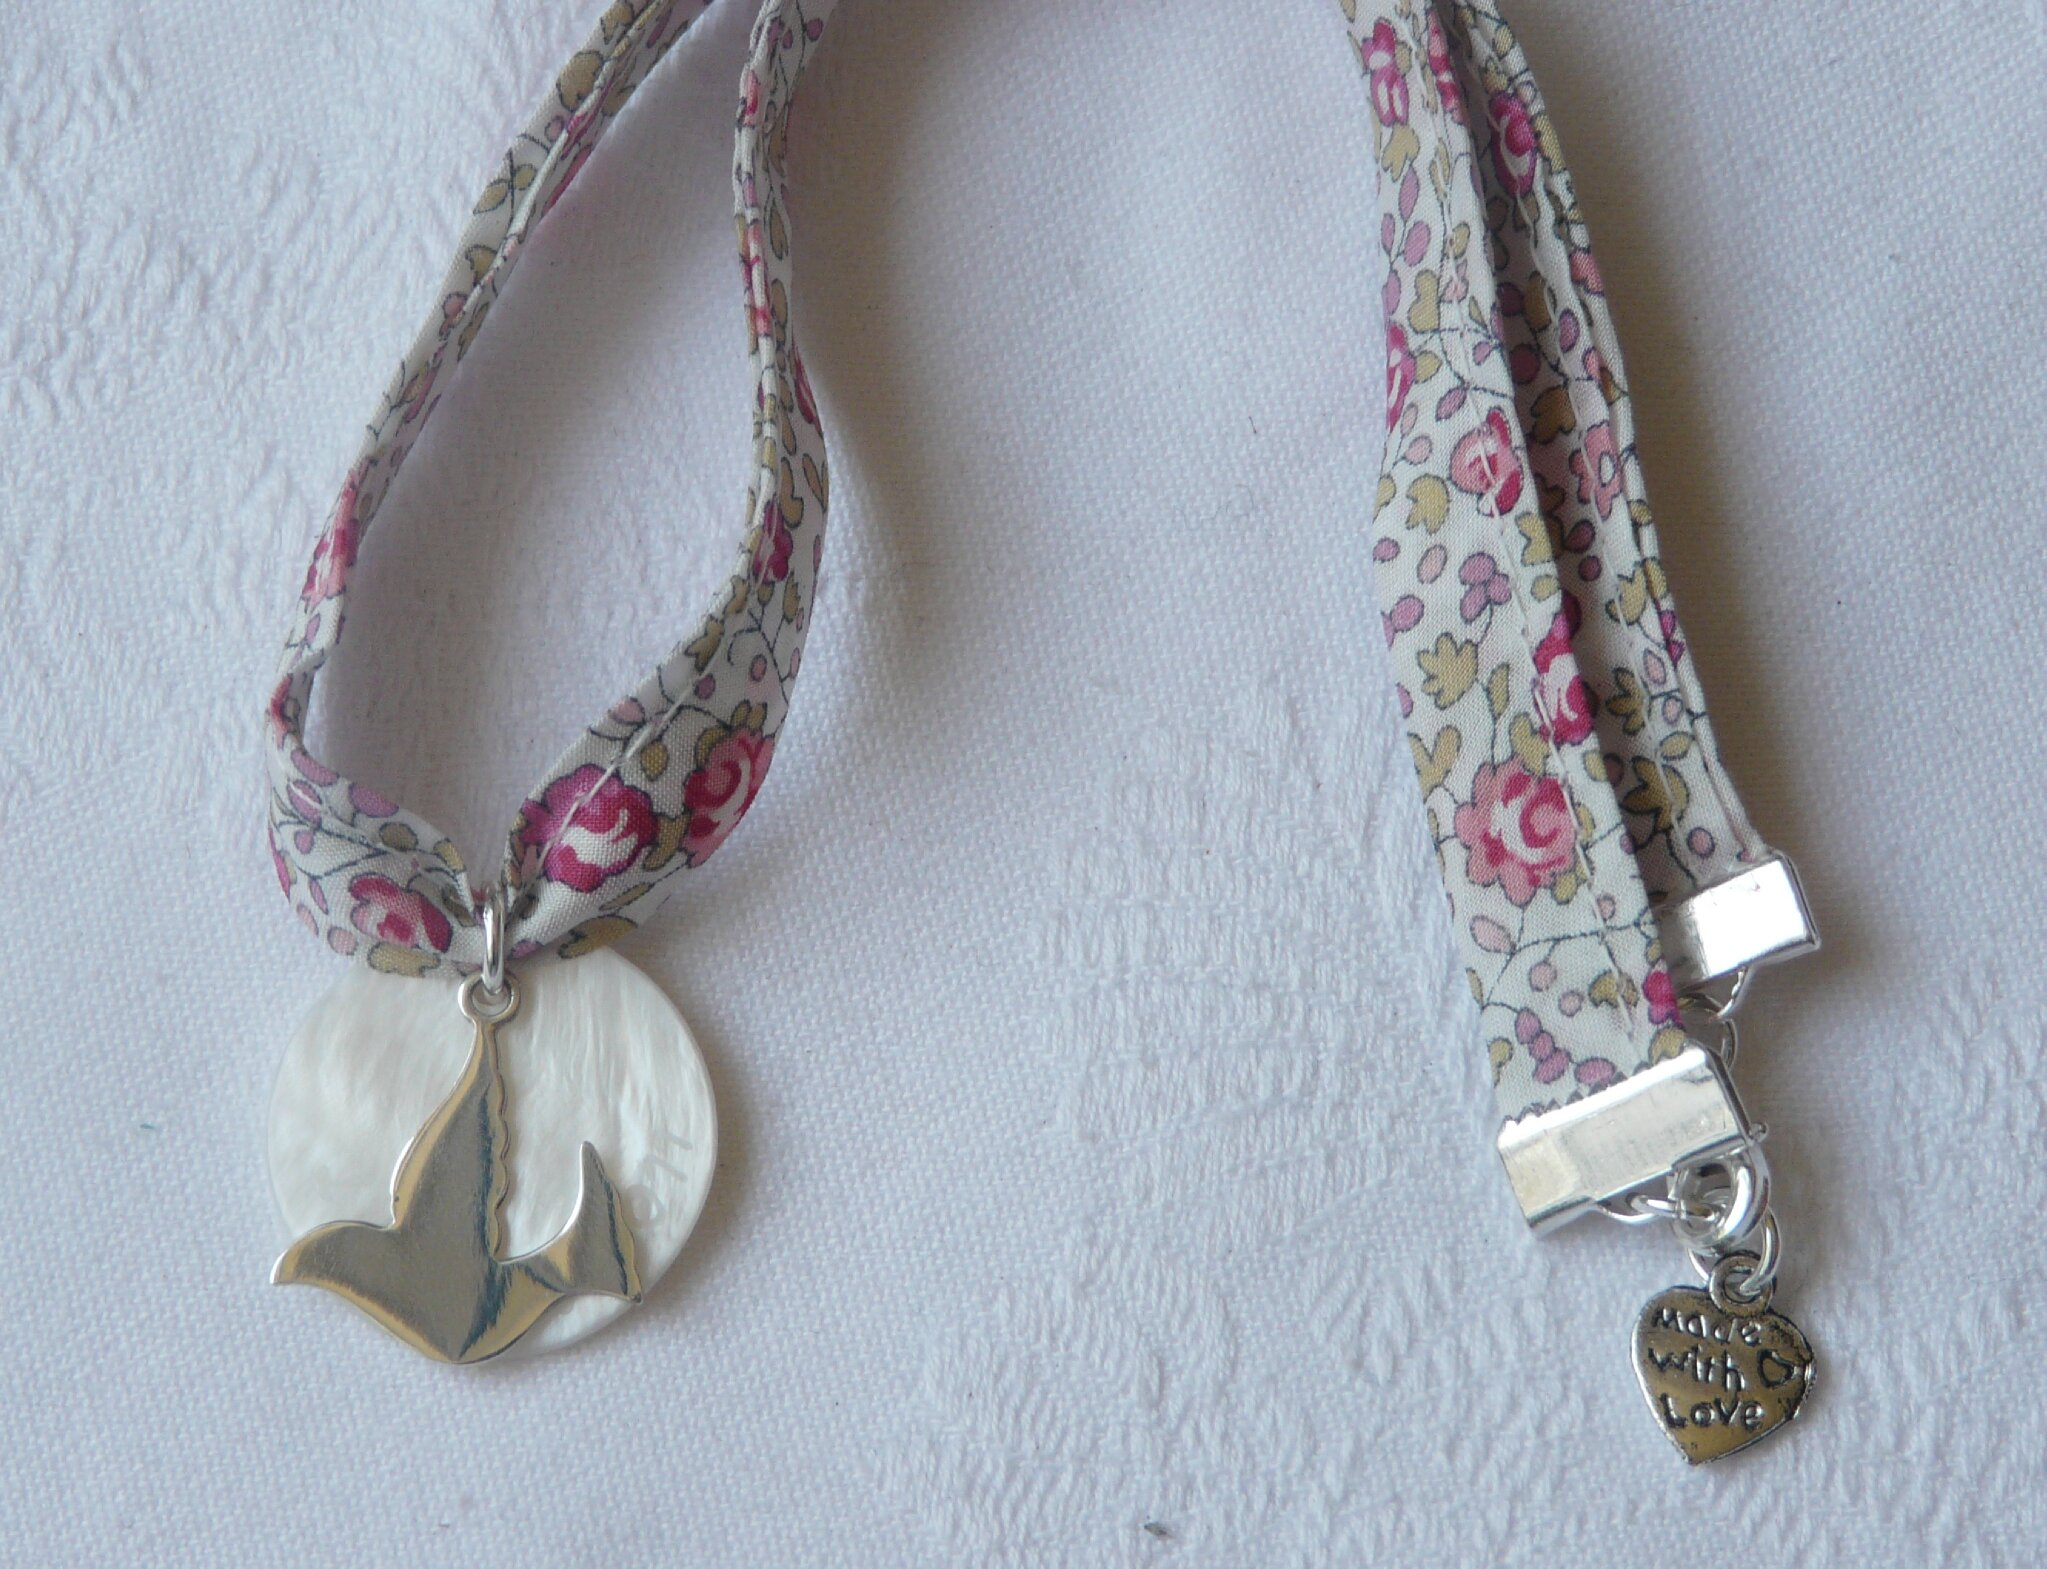 Collier de Confirmation (sur ruban Eloïse rose) - 34 €